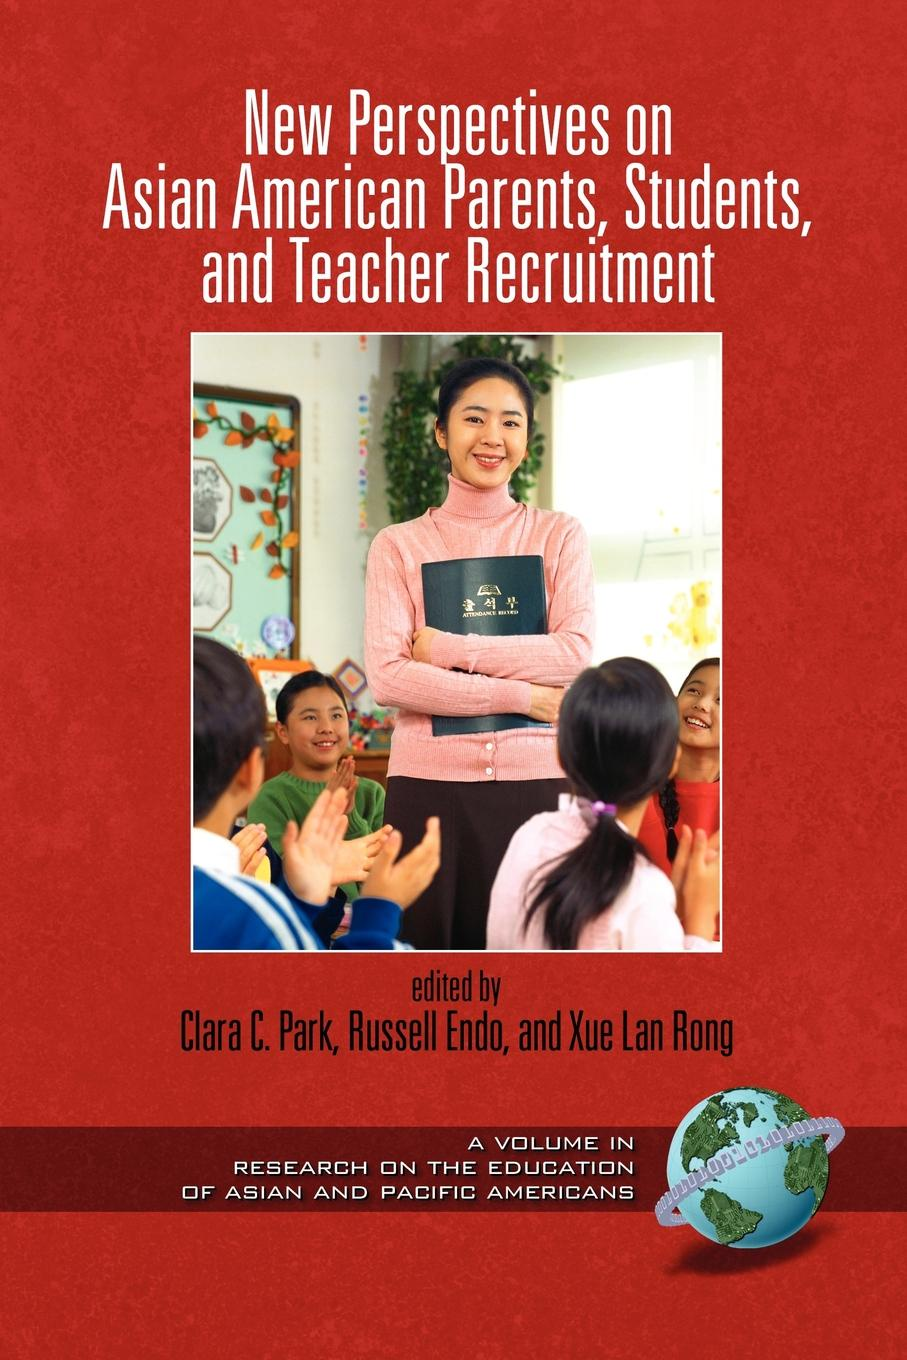 New Perspectives on Asian American Parents, Students, and Teacher Recruitment (PB) дефлектор капота ca toyota camry 2009 с волной